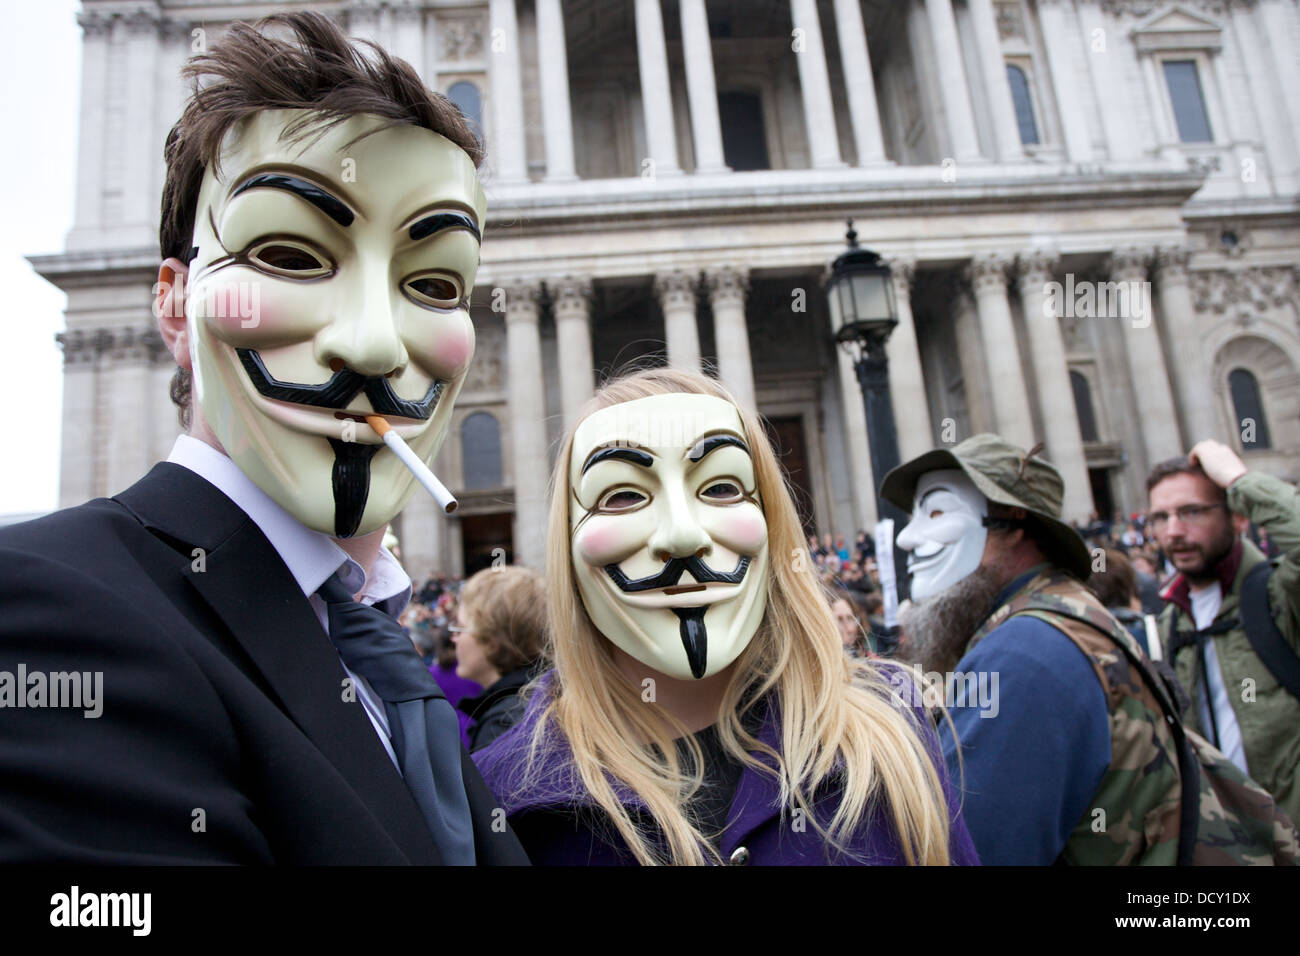 Anti capitalist protesters outside St Pauls Cathedral in London, UK - Stock Image